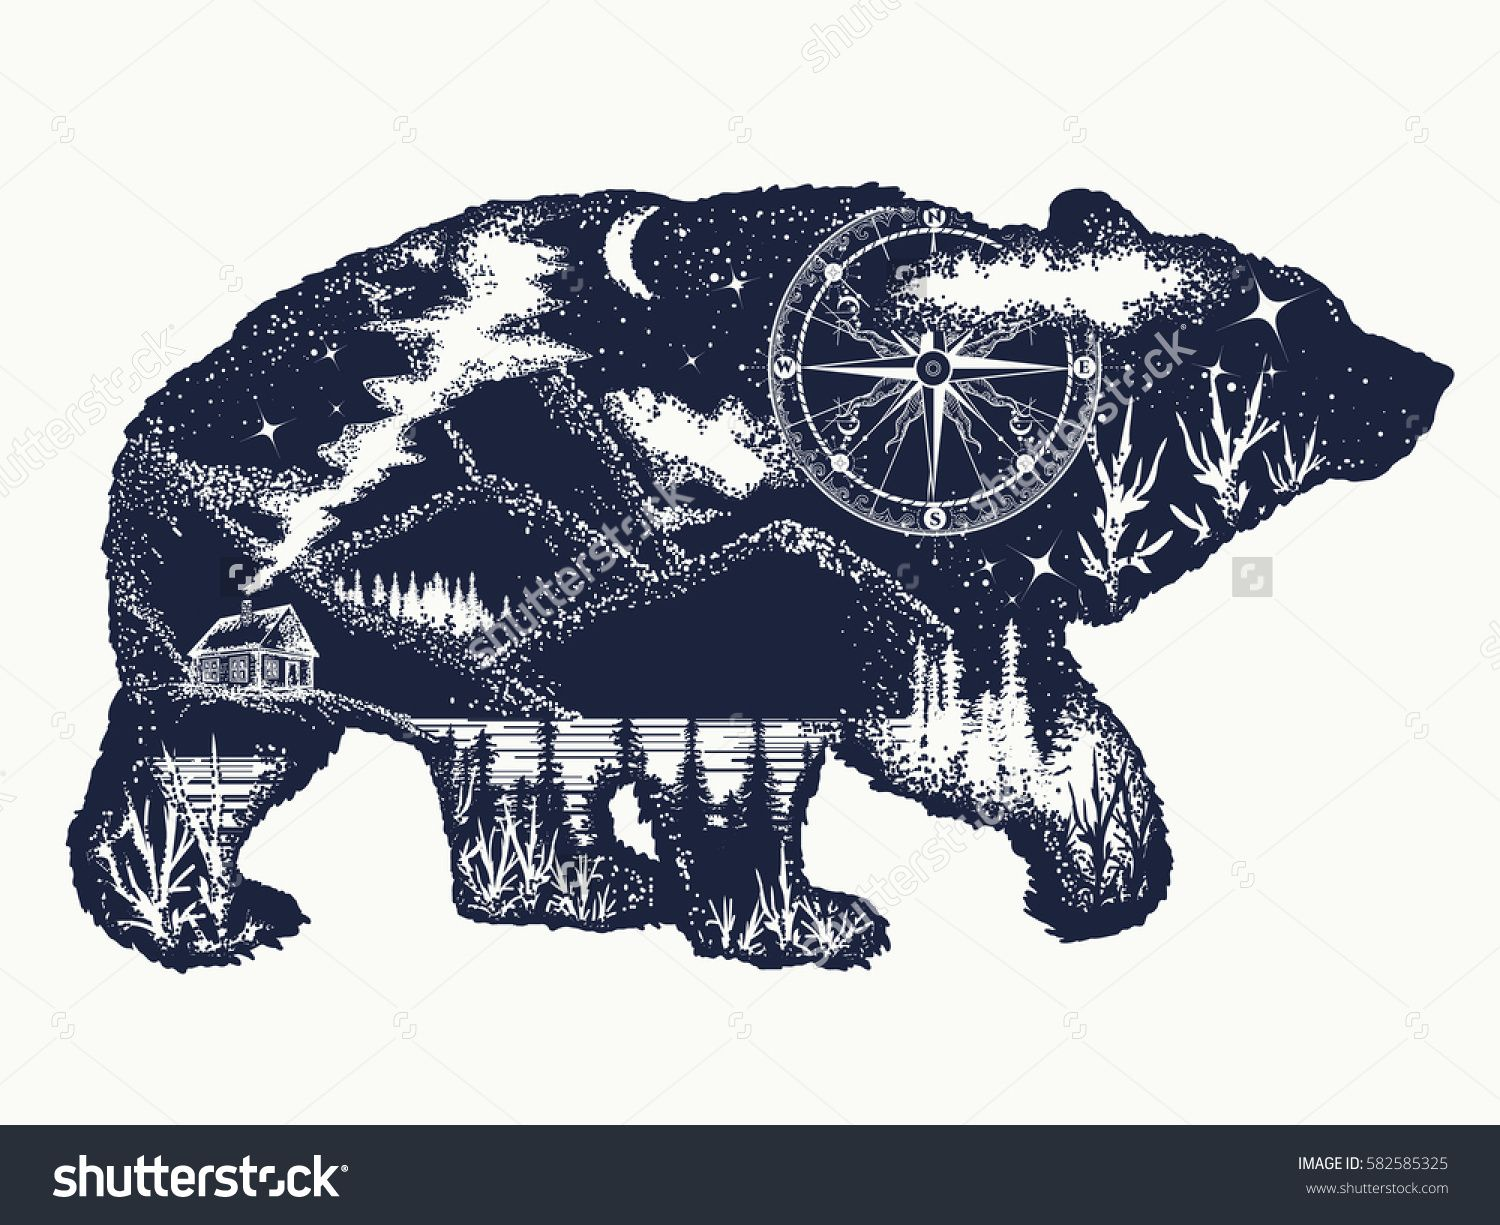 b4e3707f7 Bear double exposure tattoo art. Tourism symbol, adventure, great outdoor.  Mountains, compass. Bear grizzly silhouette t-shirt design